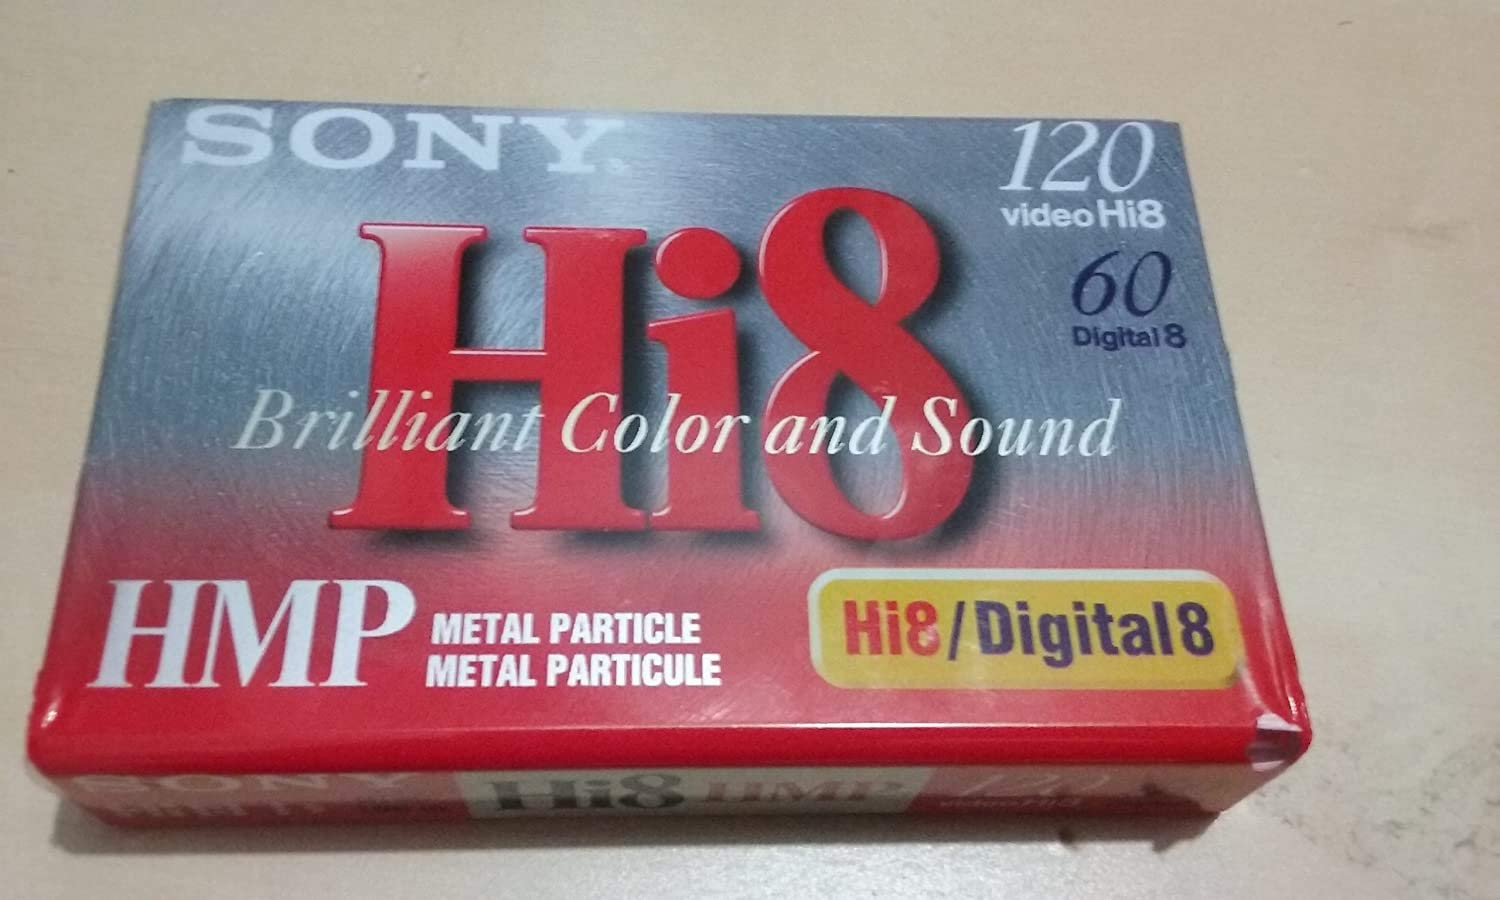 Sony Cheap sale 120 minute Hi8 Manufacturer 1-Pack Cheap SALE Start Discontinued by